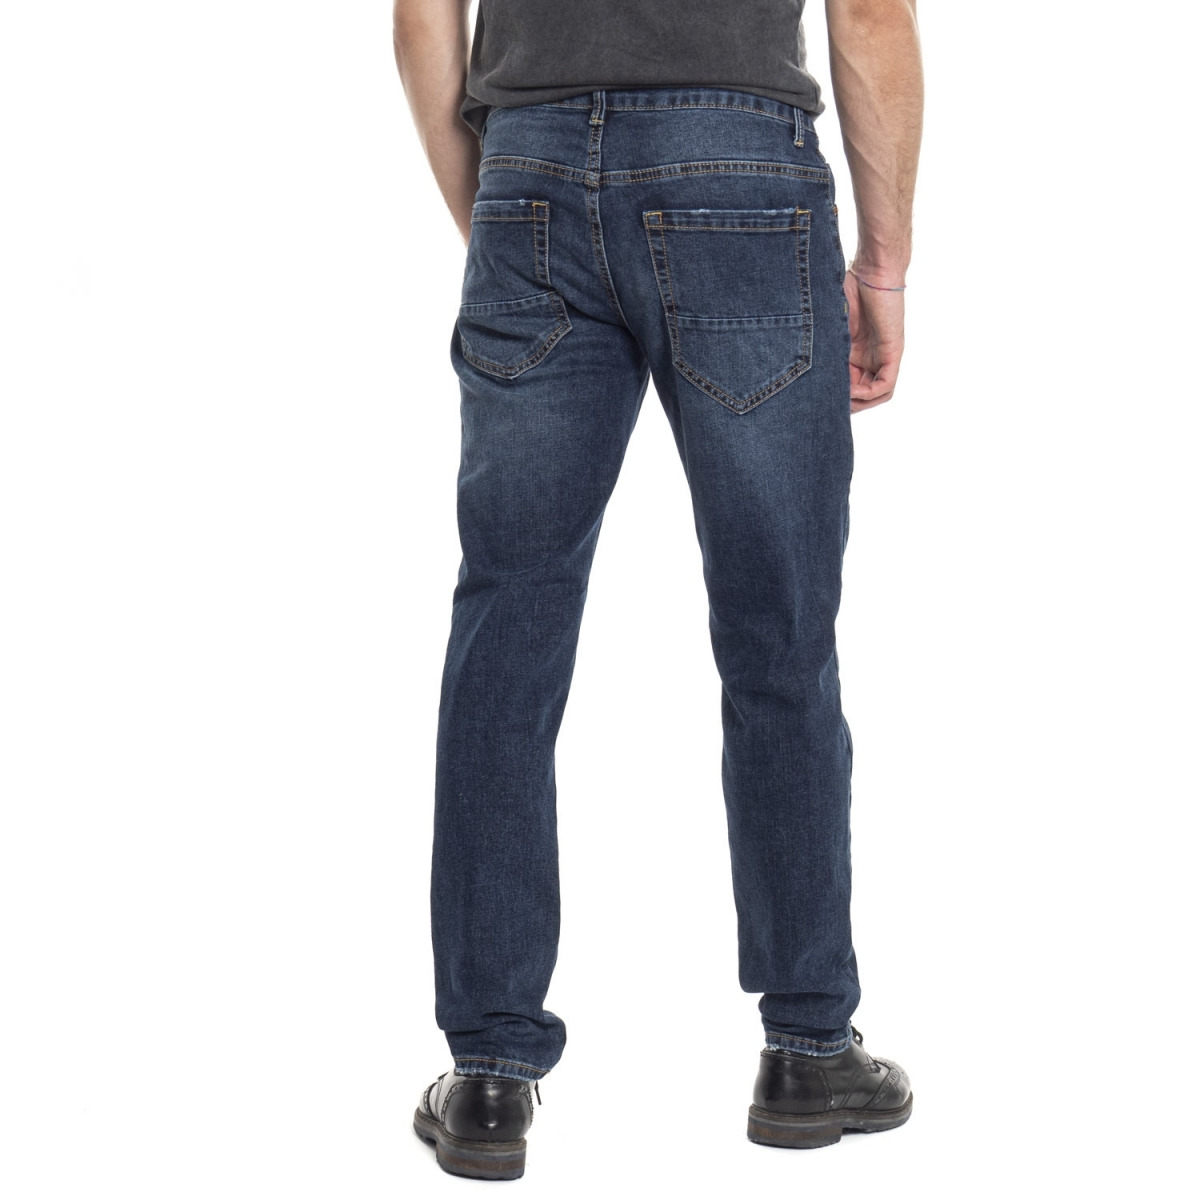 clothing Denim men Jeans ATM1089-3 LANDEK PARK Cafedelmar Shop